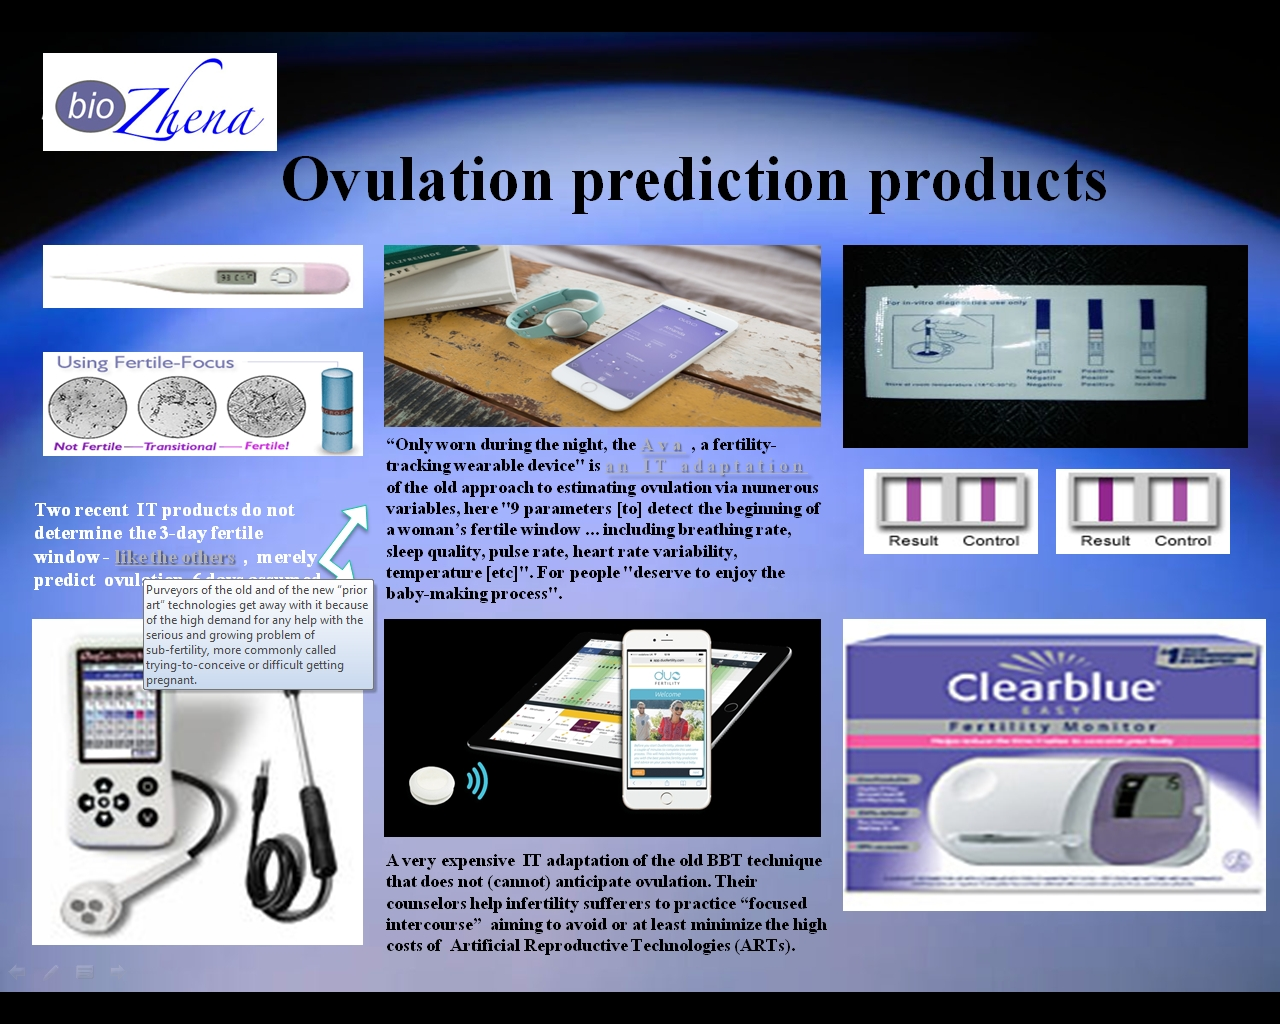 ovulation-prediction-products-w-prior-art-comment